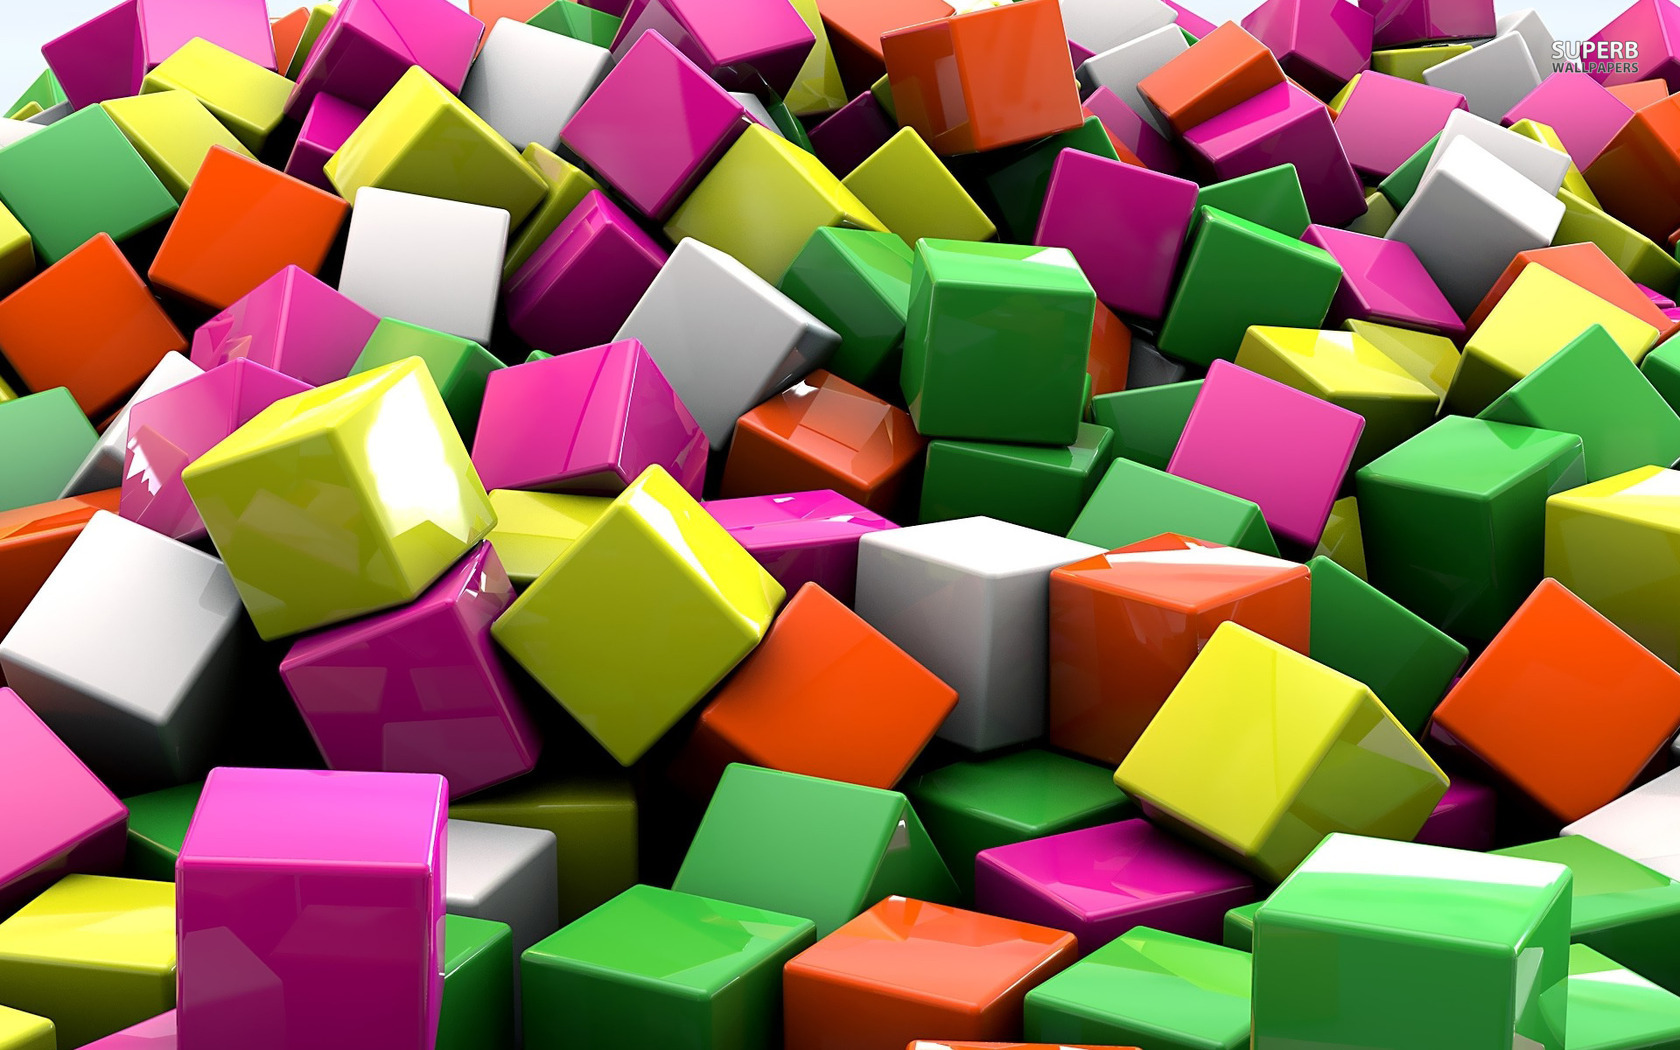 3d cubes wallpaper - wallpapersafari